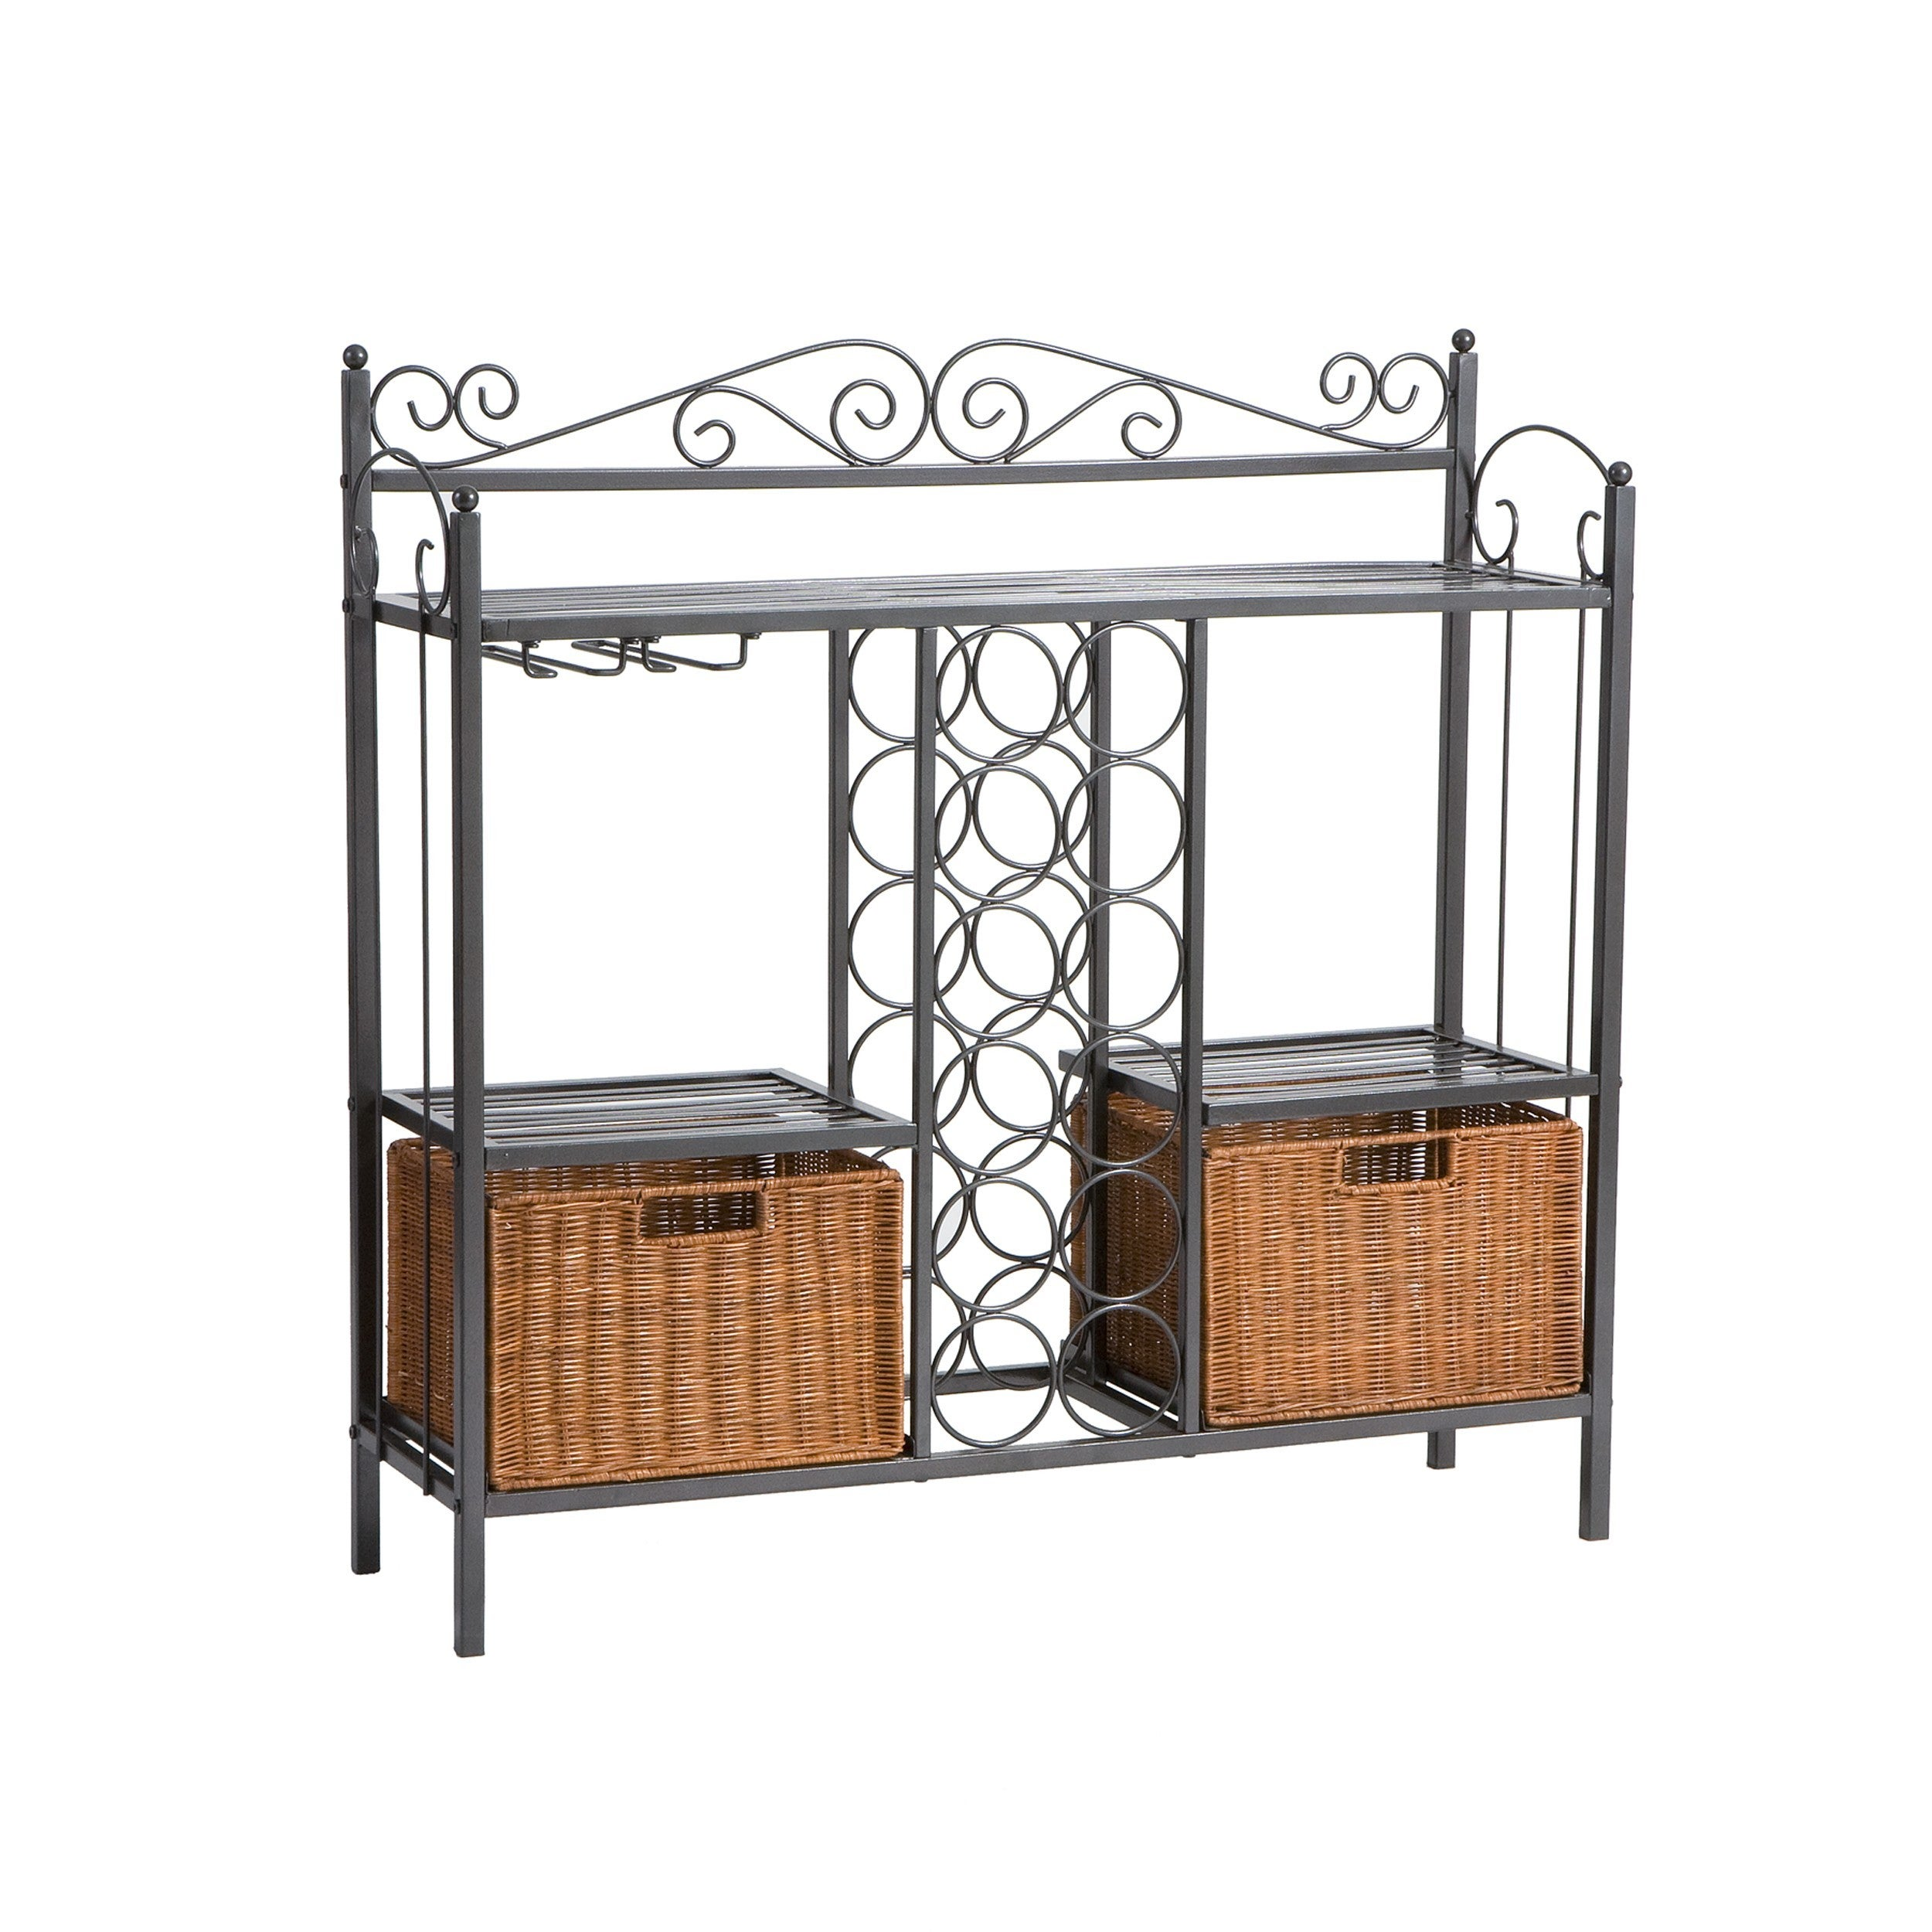 home rooms stainless collection best improvement room design amazing marvelous simple at to decoration ideas modern colorful decorating rack racks steel bakers